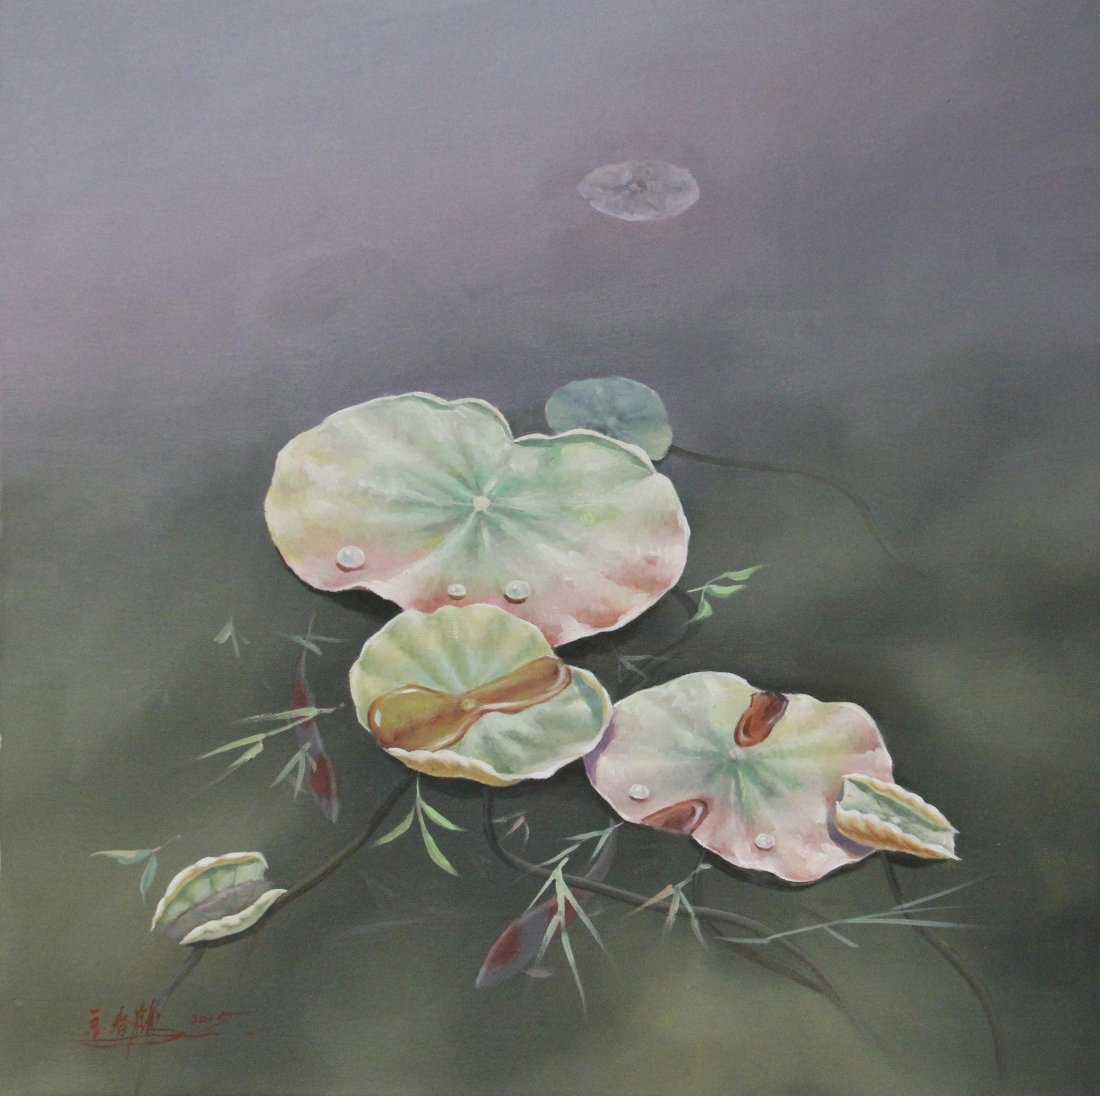 CHINESE CONTEMPORARY ART OIL PAINTING BY JINCHUNHE